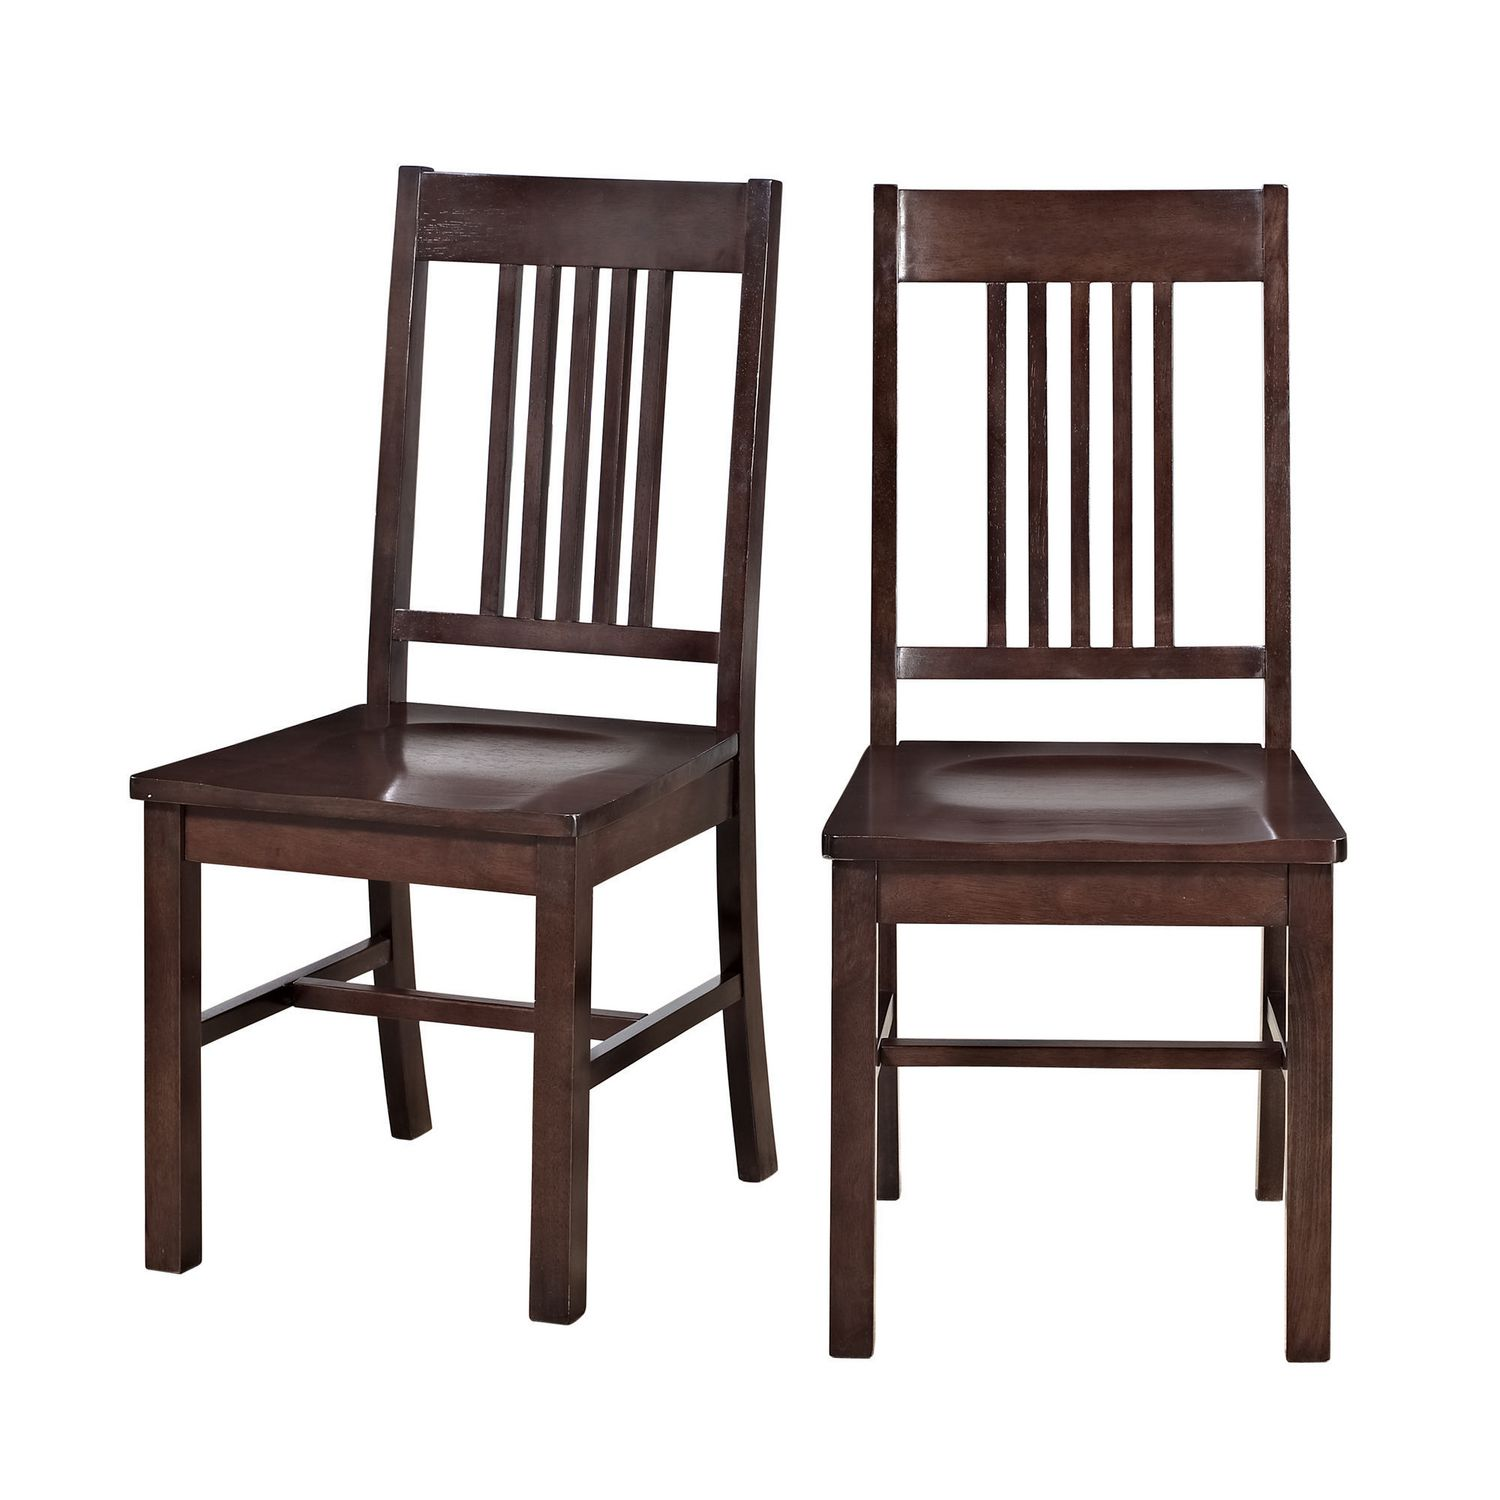 Walmart Dining Chairs: Manor Park Cappuccino Wood Dining Chair